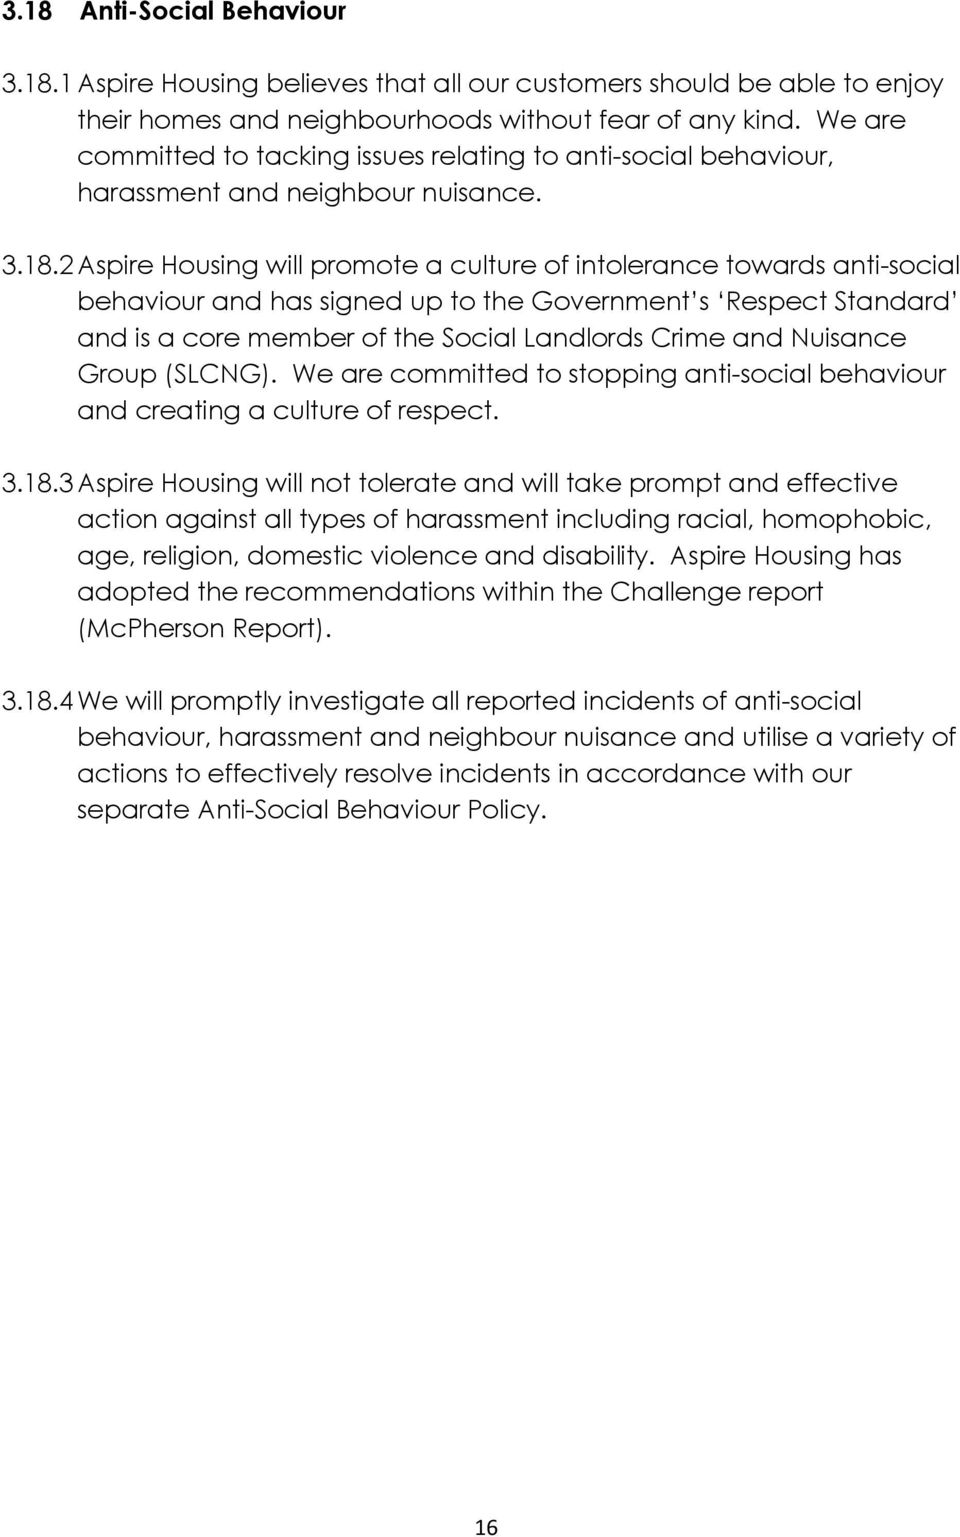 2 Aspire Housing will promote a culture of intolerance towards anti-social behaviour and has signed up to the Government s Respect Standard and is a core member of the Social Landlords Crime and